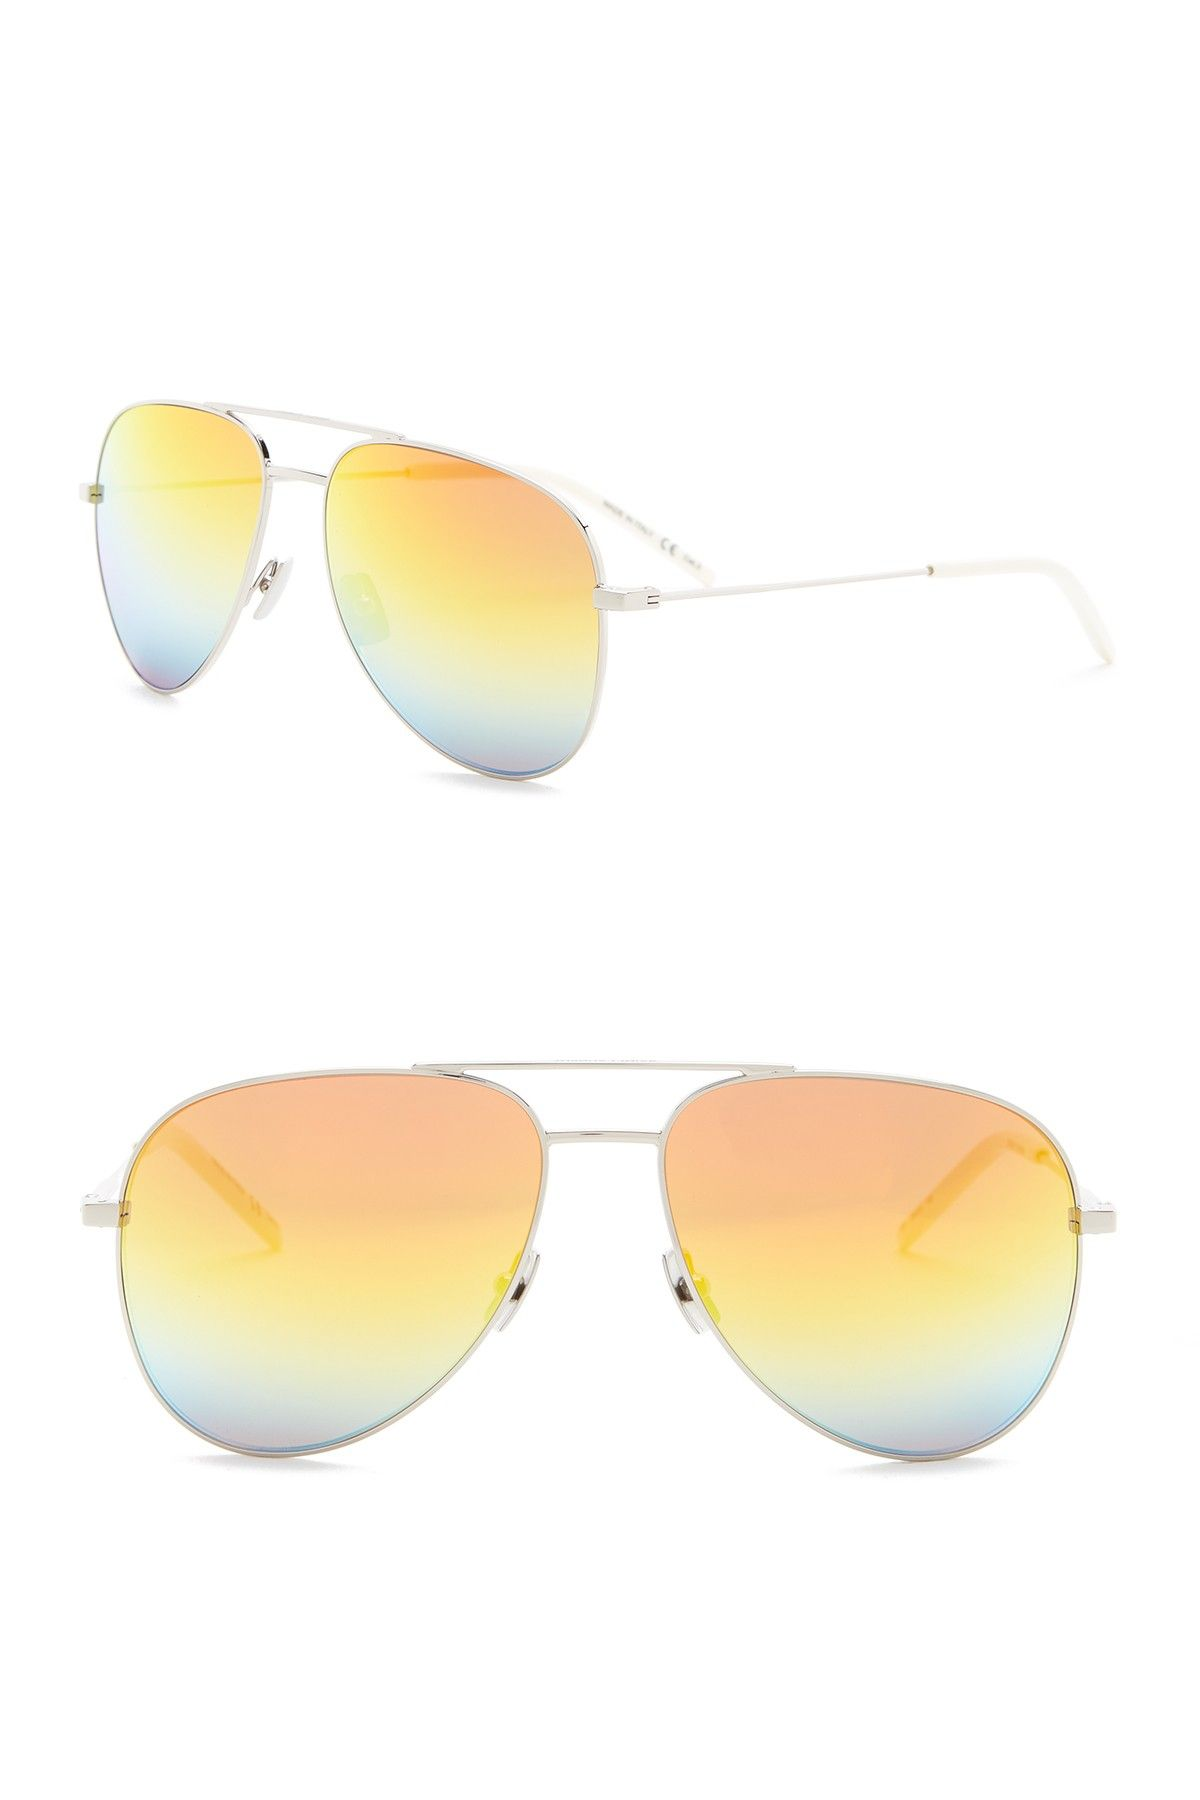 e0007f19d339b Saint Laurent - 59mm Aviator Sunglasses is now 68% off. Free Shipping on  orders over  100.